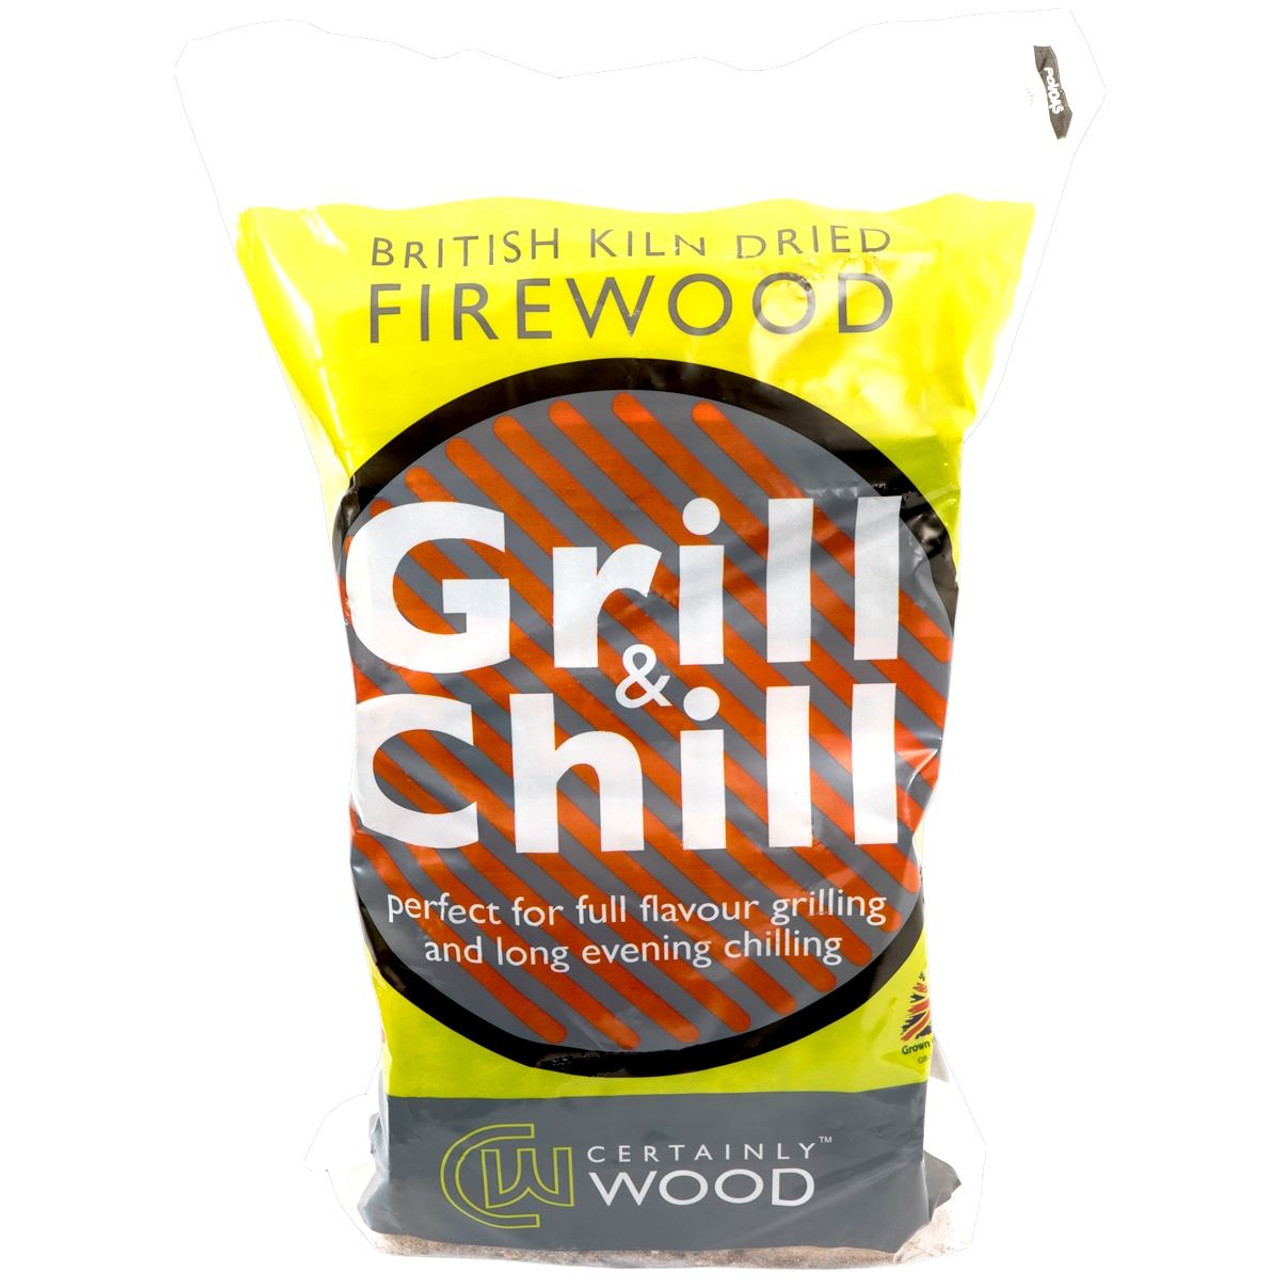 Certainly Wood Grill and Chill Firewood